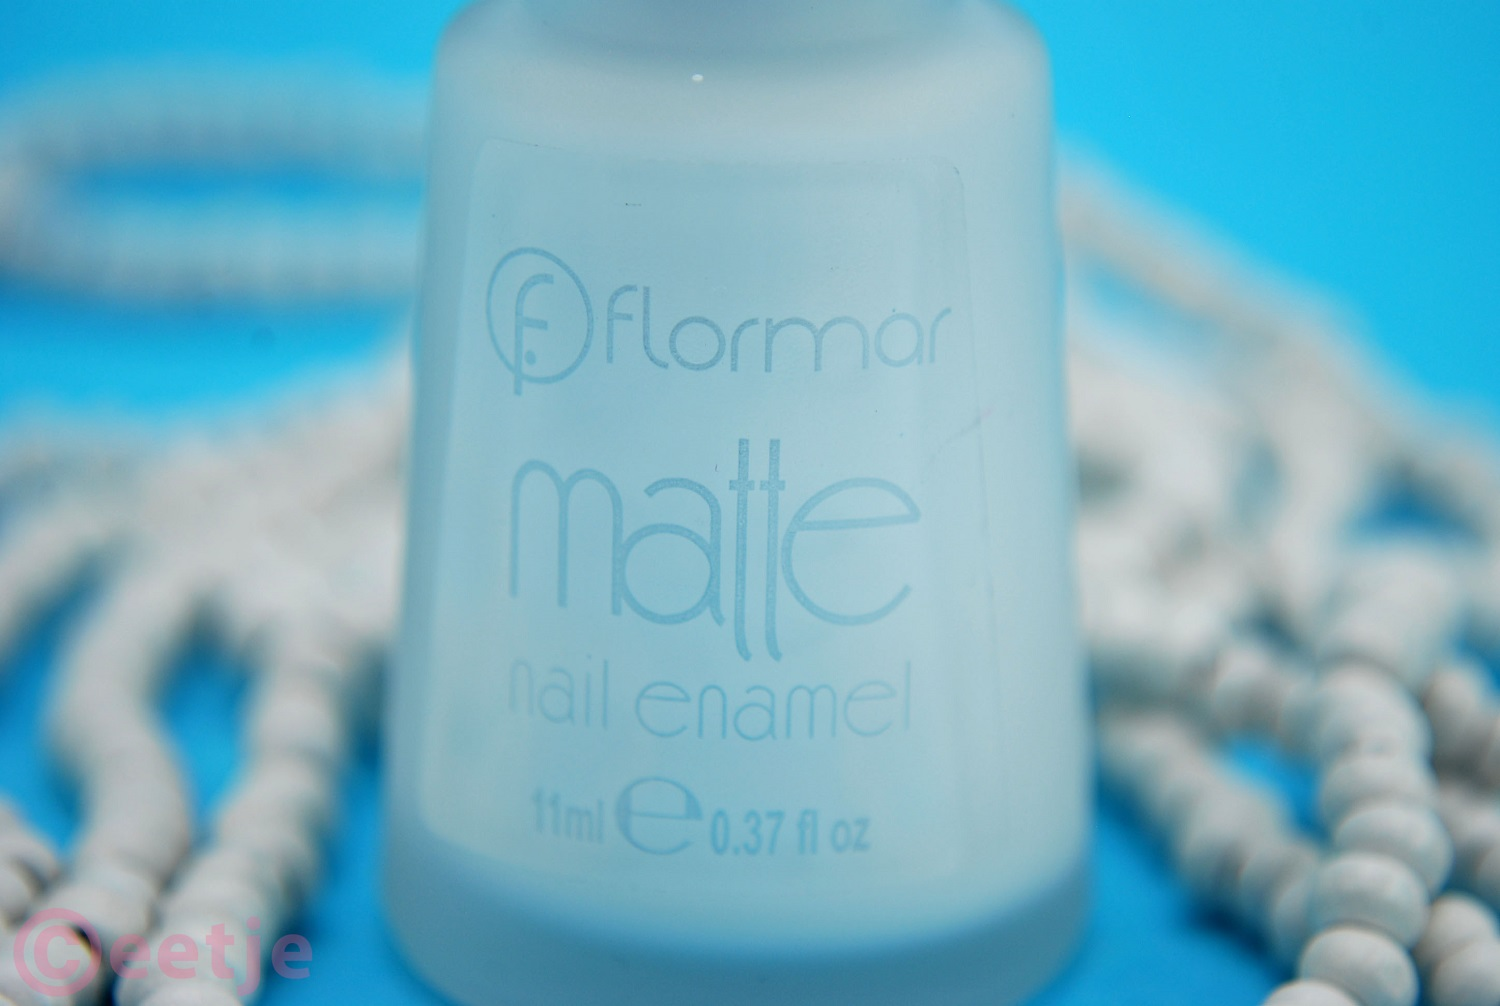 Matte white nailpolish review swatch Flormar